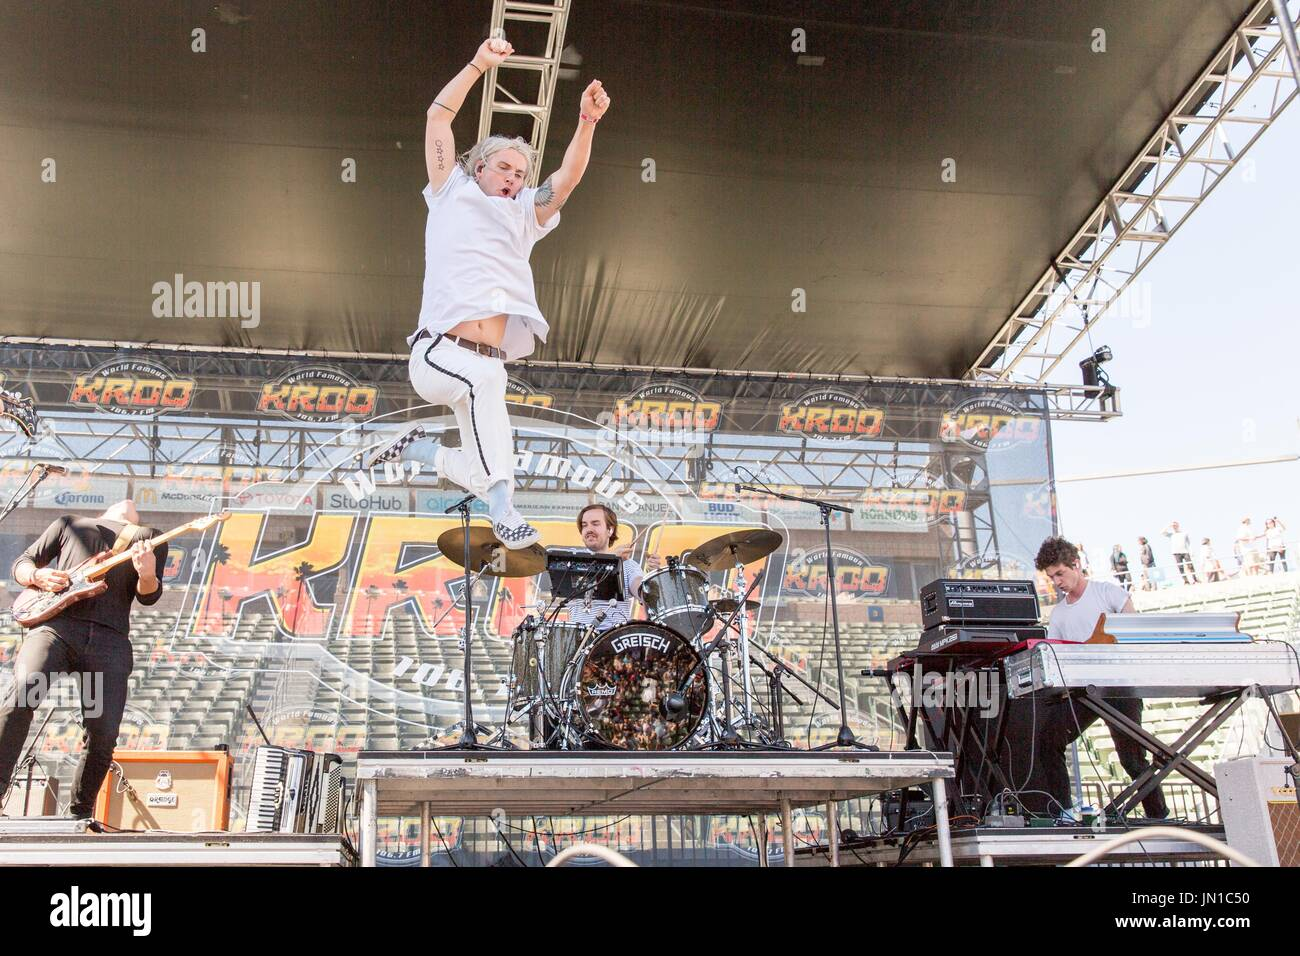 Carson, California, USA. 20th May, 2017. BRIAN MACDONALD, JUDAH AKERS, SPENCER CROSS and DANIEL WEATHERBY of Judah and the Lion during KROQ Weenie Roast Y Fiesta at StubHub Center in Carson, California Credit: Daniel DeSlover/ZUMA Wire/Alamy Live News - Stock Image